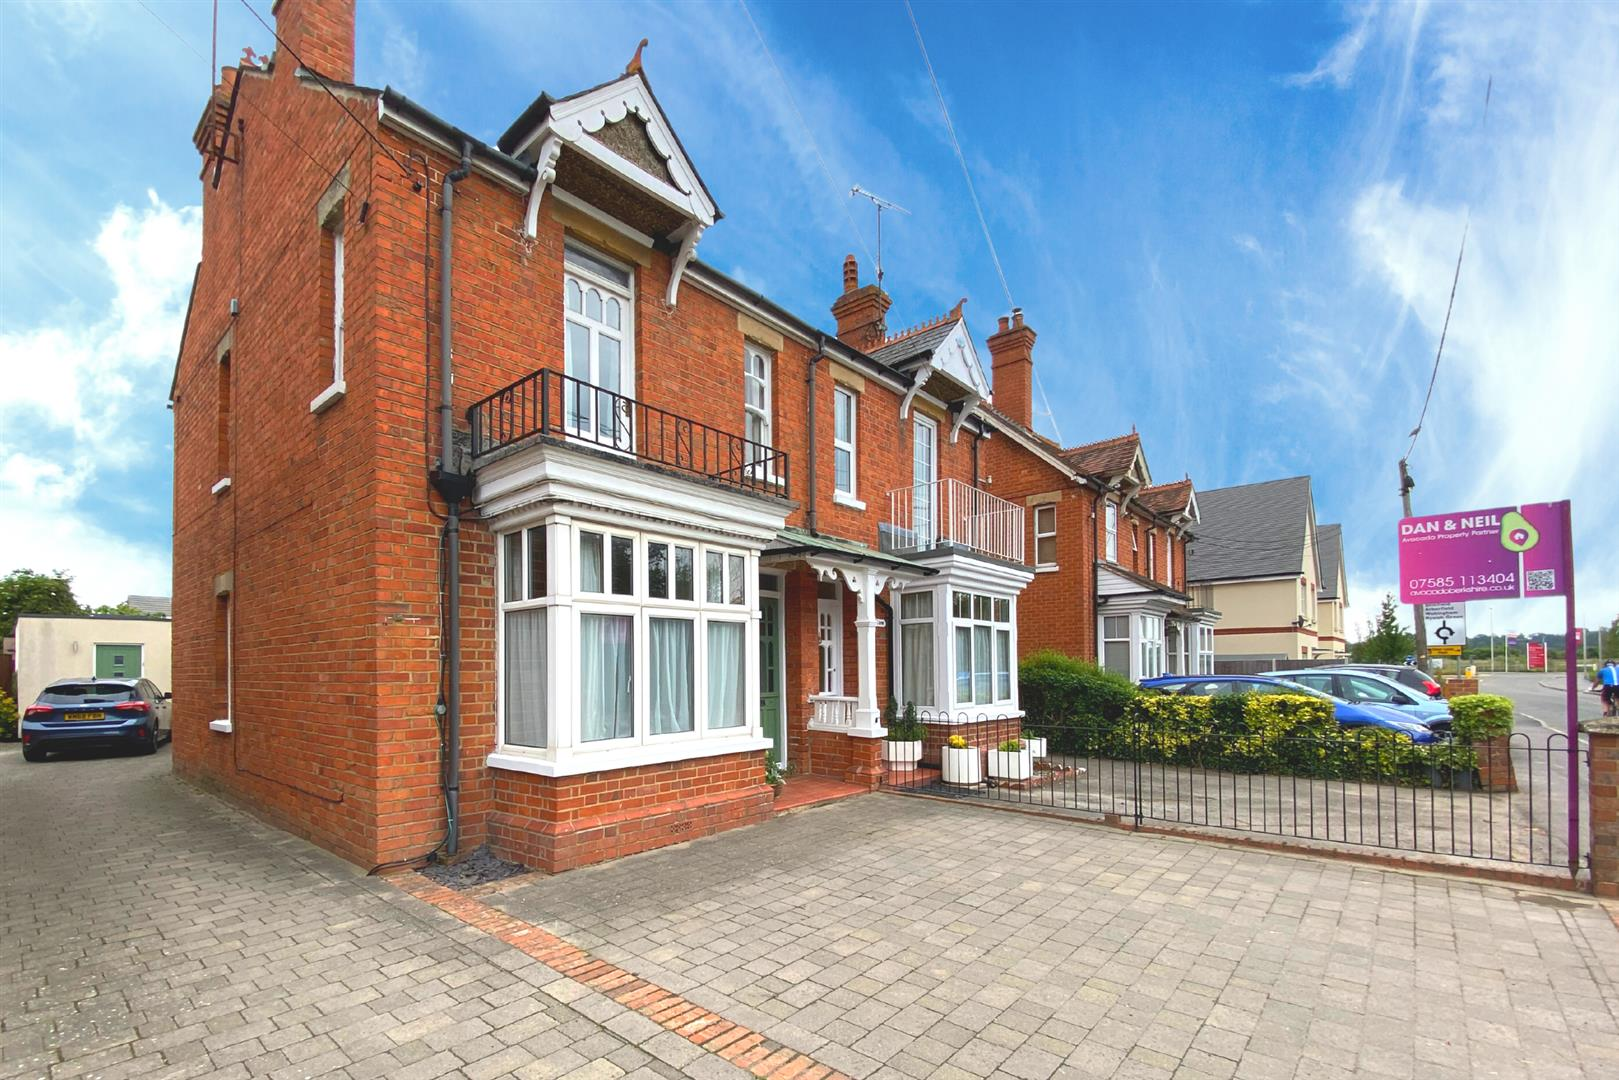 4 bed semi-detached for sale in Three Mile Cross, RG7